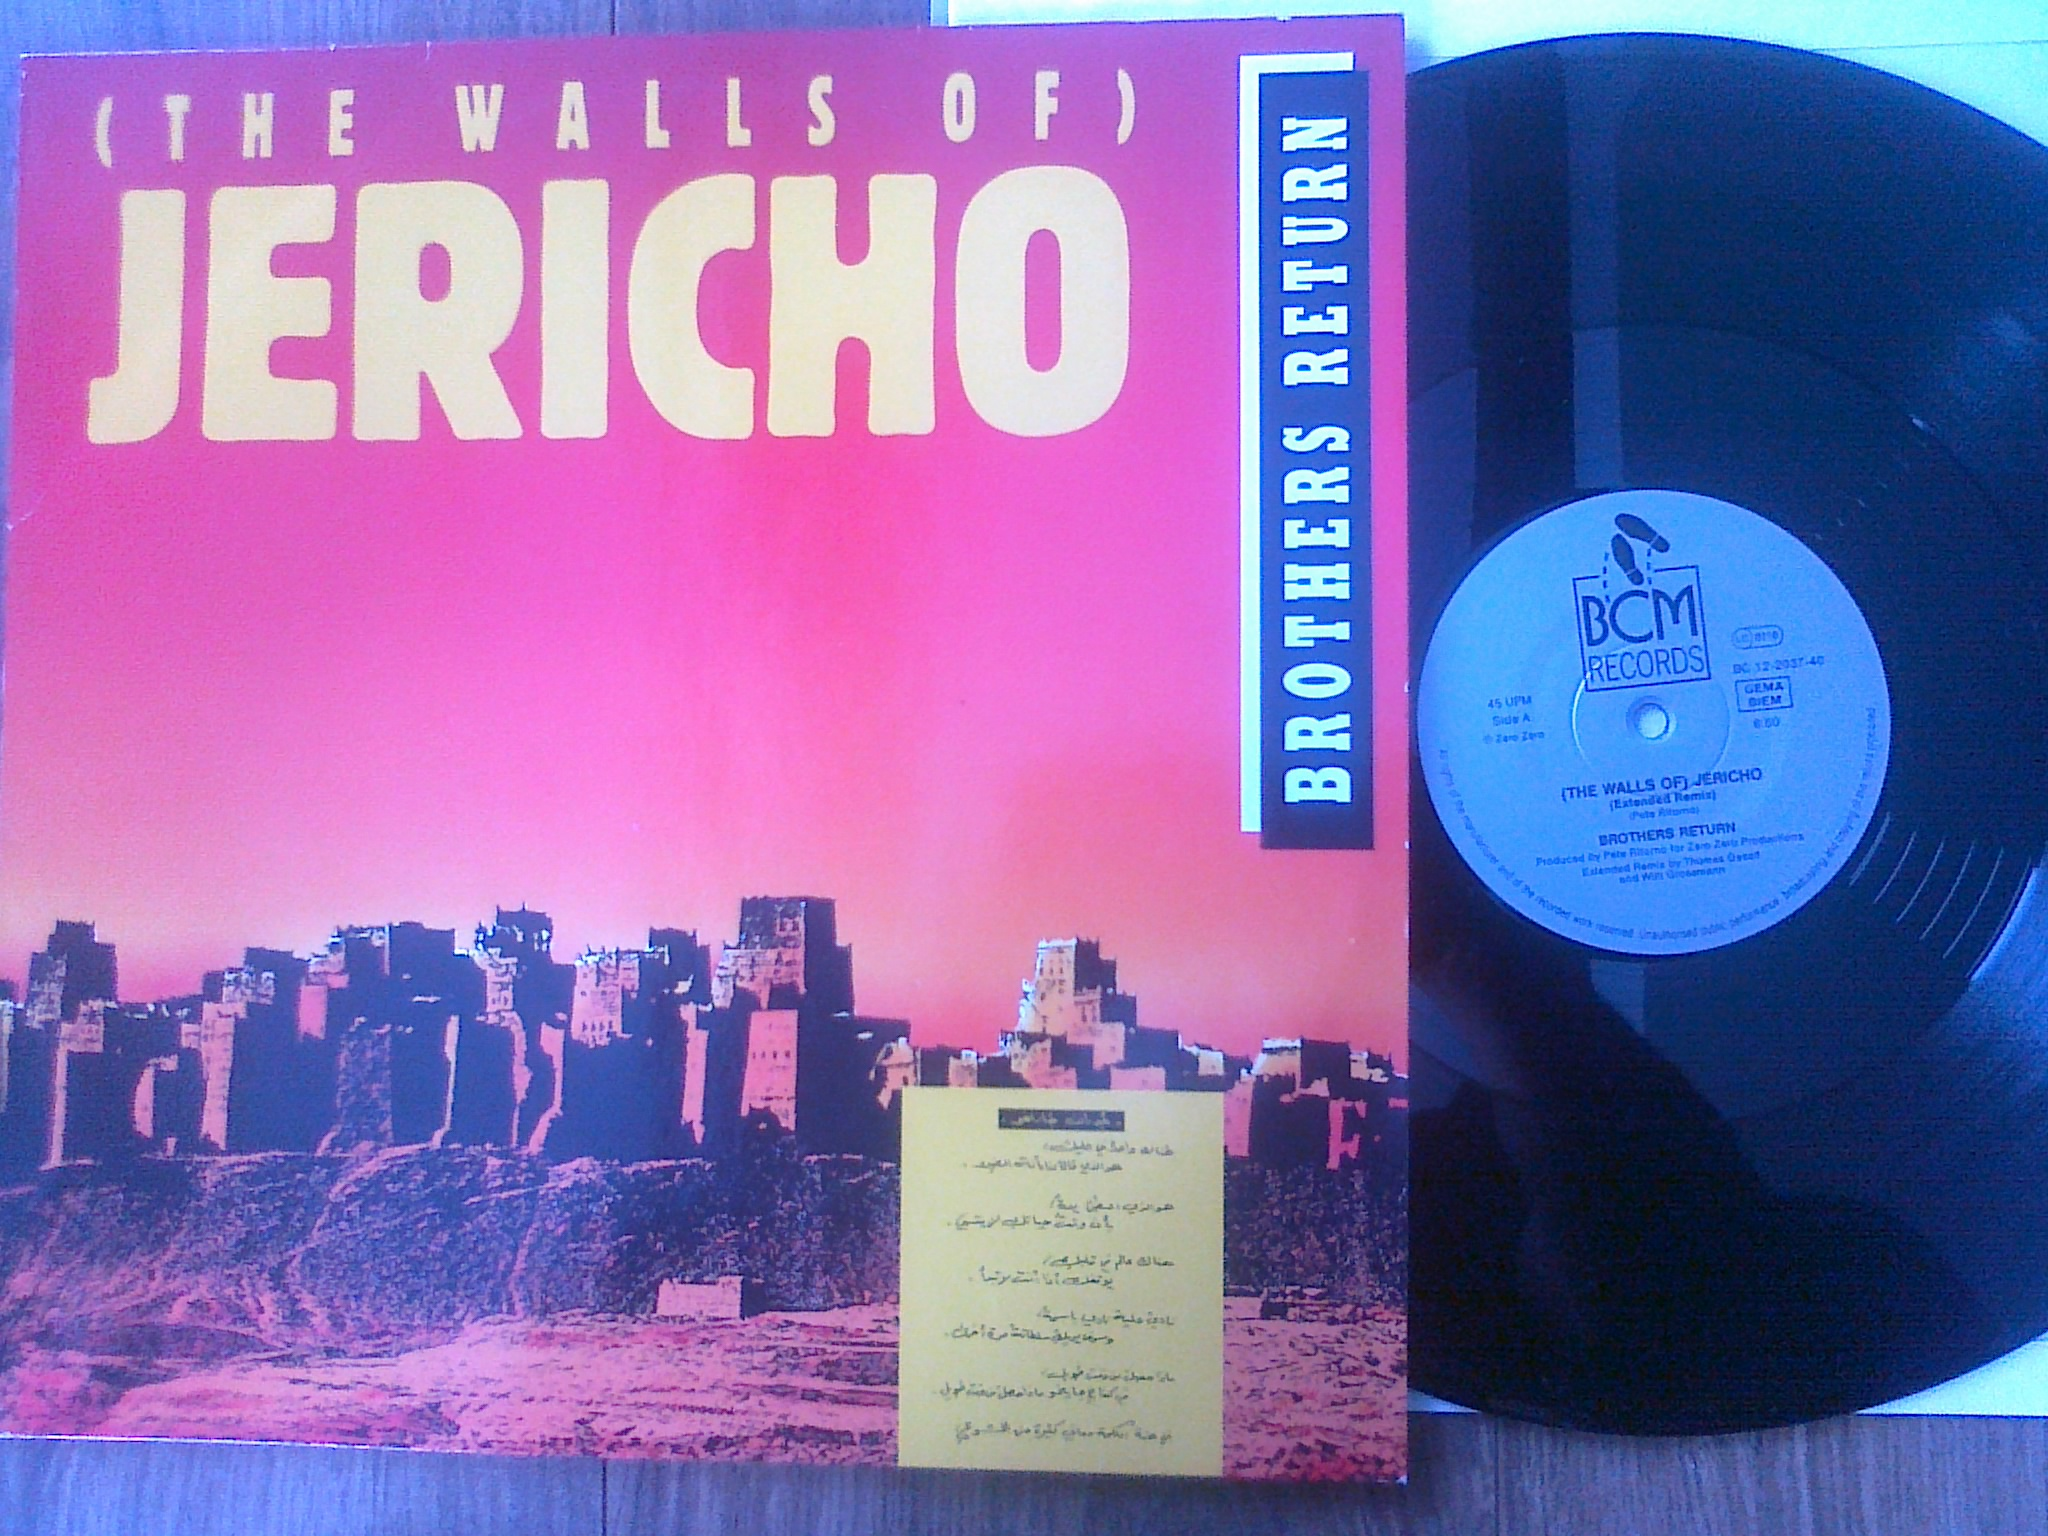 Brothers Return - (The Walls Of) Jericho